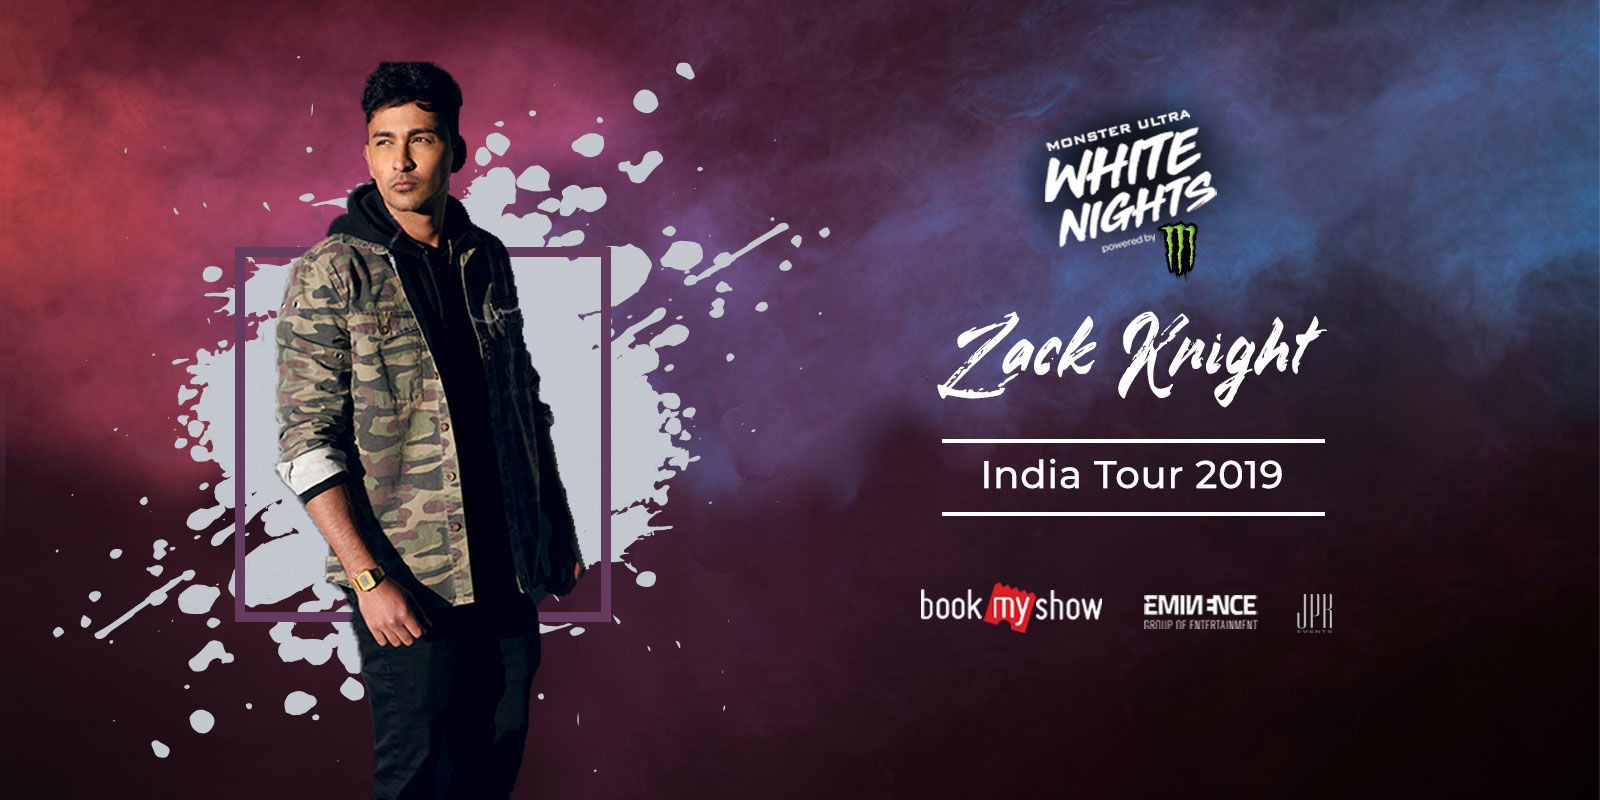 Website banner for the Ultra Nights event